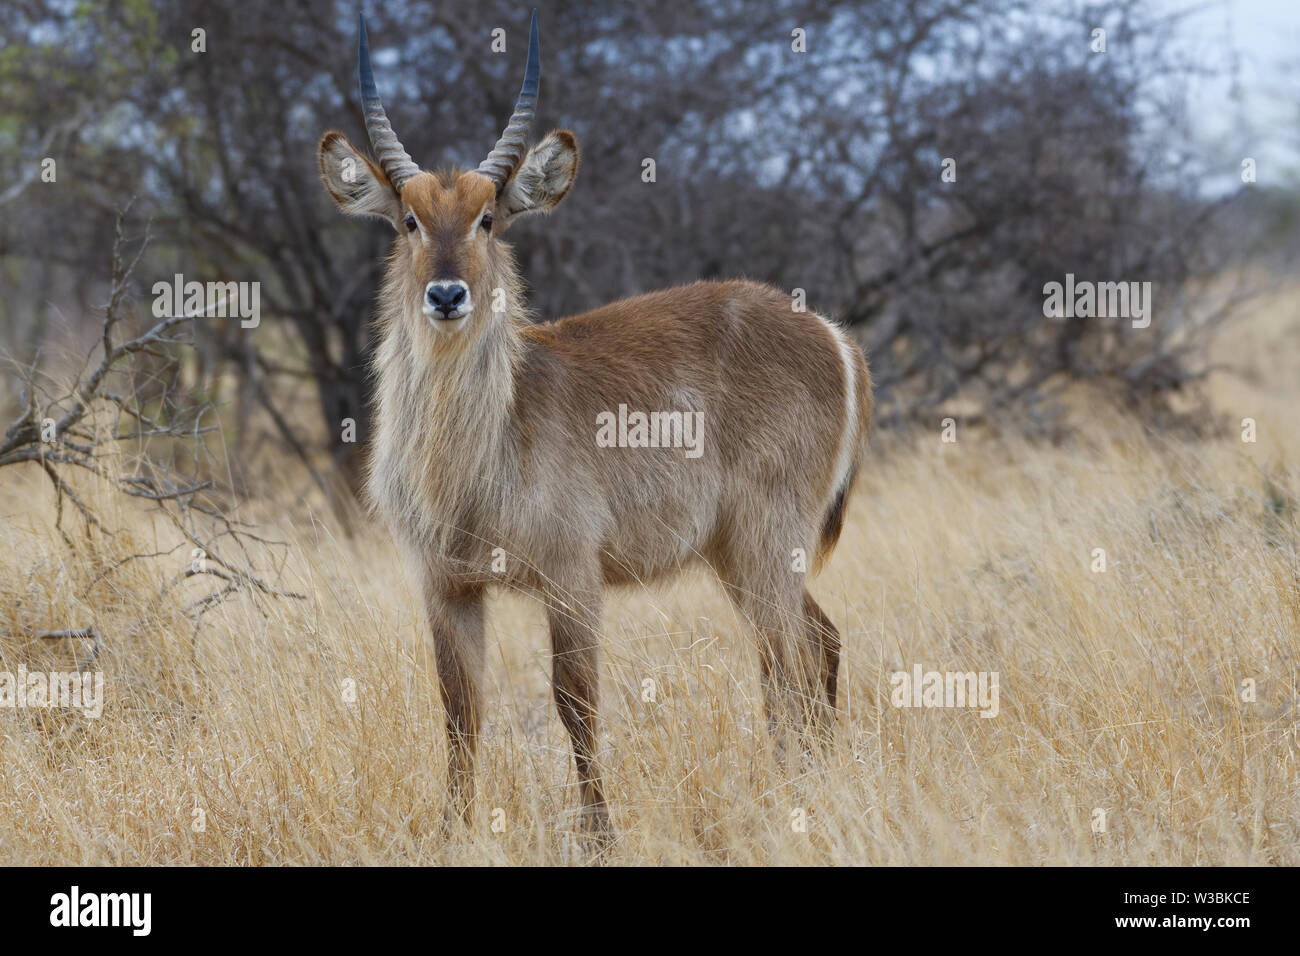 Common waterbuck (Kobus ellipsiprymnus), adult male standing in the dry grassland, attentive, Kruger National Park, South Africa, Africa - Stock Image